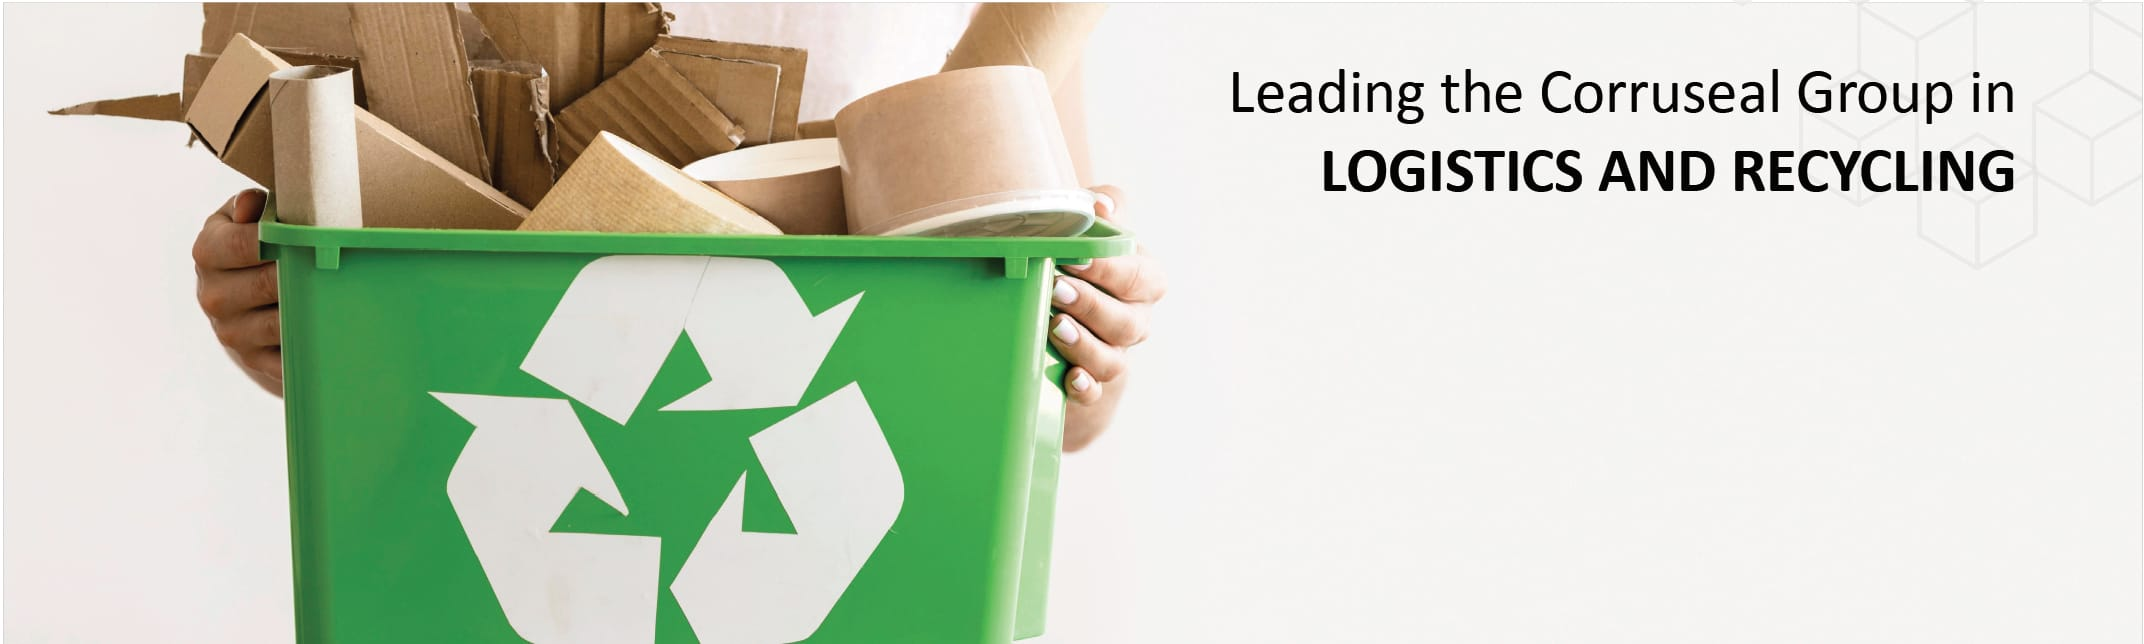 Corruseal Group Recycling Banner